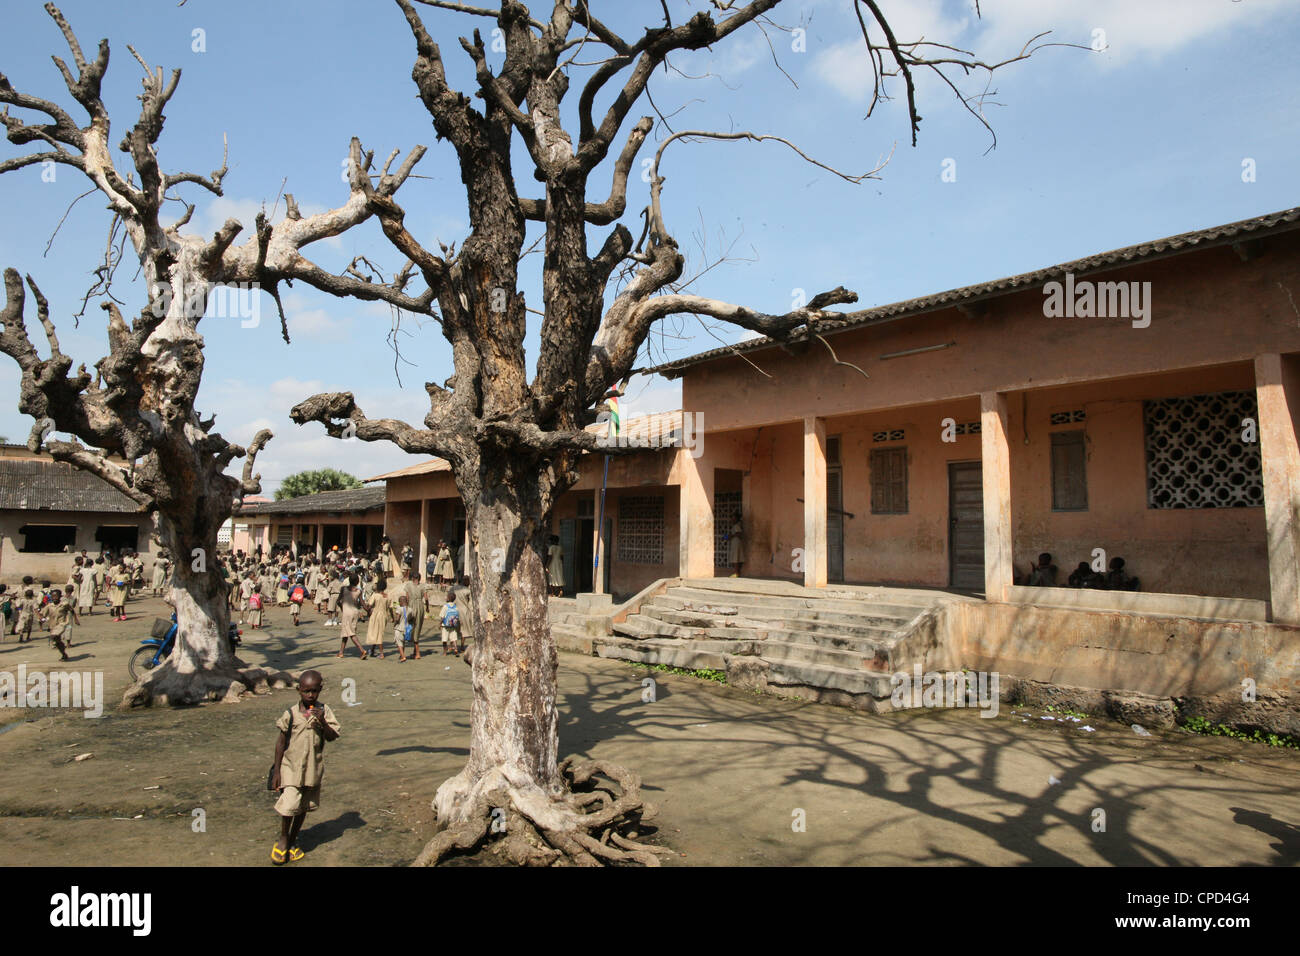 Primary school, Lome, Togo, West Africa, Africa - Stock Image